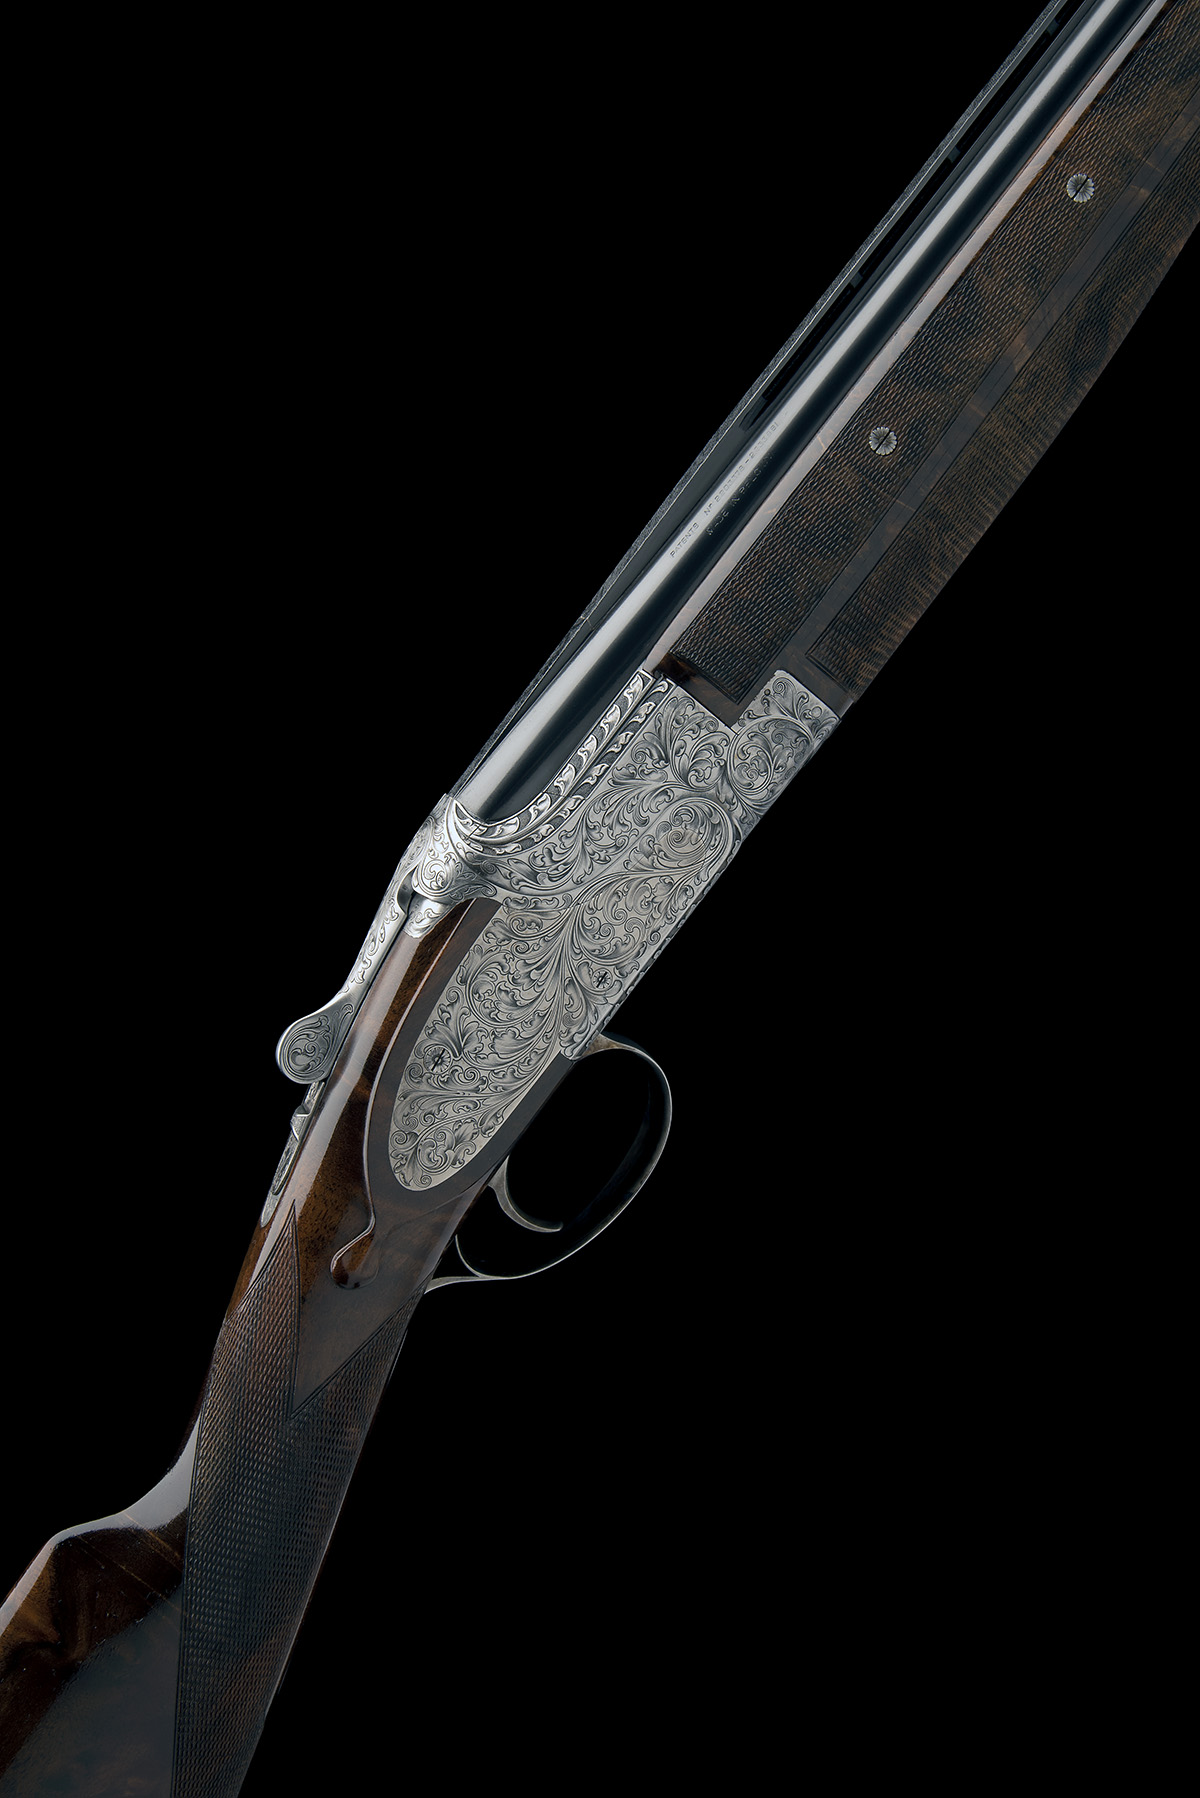 BROWNING ARMS CO. A CUSTOM JACOBY-ENGRAVED 20-BORE SIDEPLATED 'B25' SINGLE-TRIGGER OVER AND UNDER